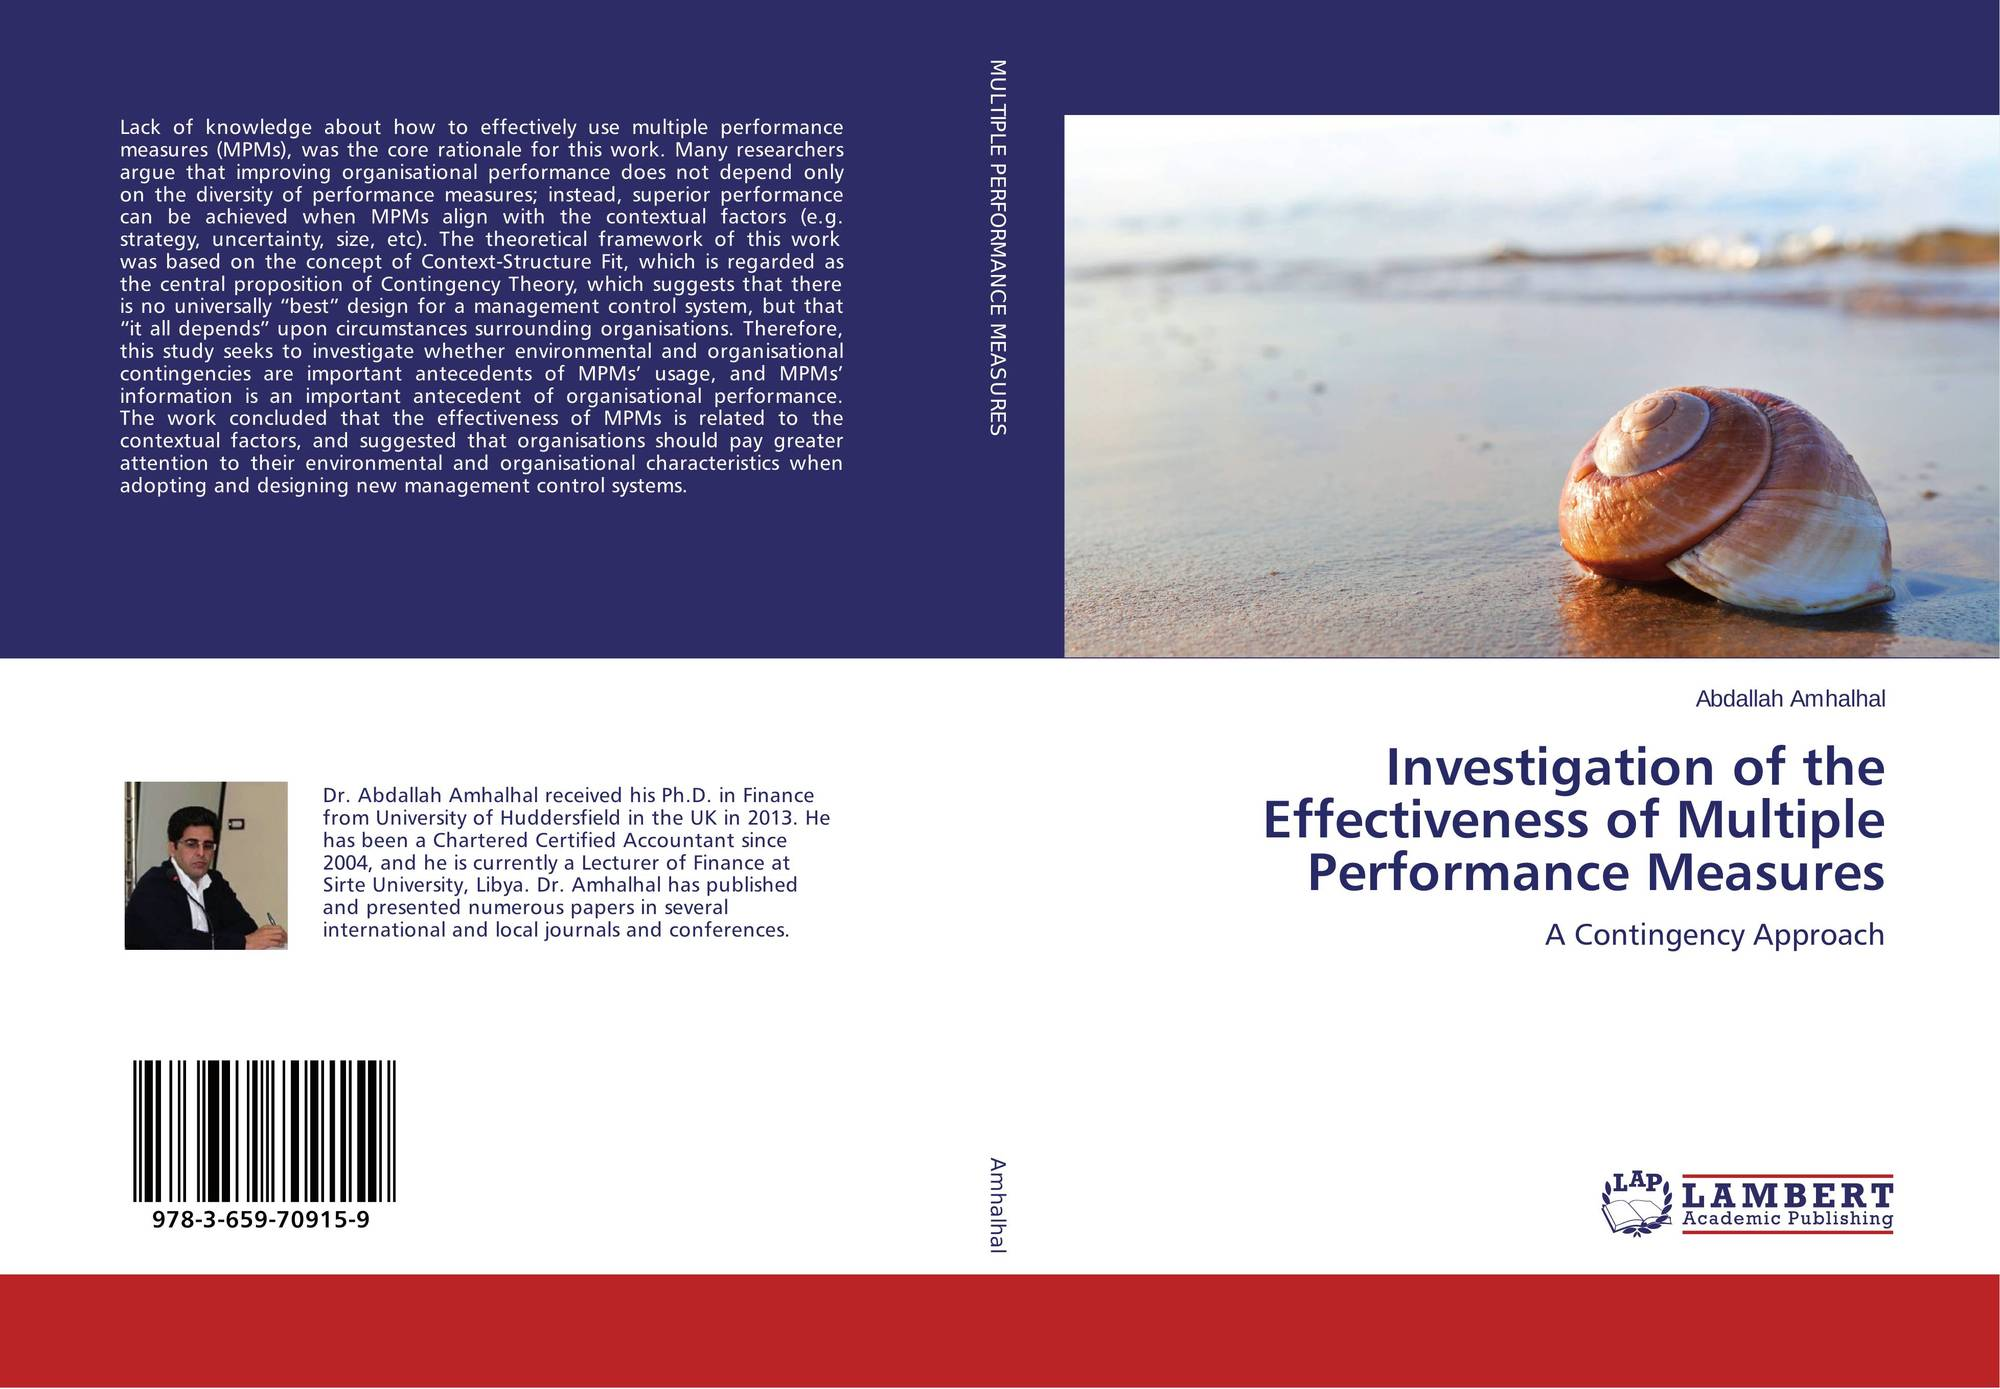 an investigation into effectiveness of performance 6 summary investigation into the circumstances surrounding the monitoring, inspection and funding of learndirect ltd summary key findings events before ofsted's march 2017 inspection 1 ofsted inspected learndirect ltd in march 2013, and rated its overall effectiveness as 'good.